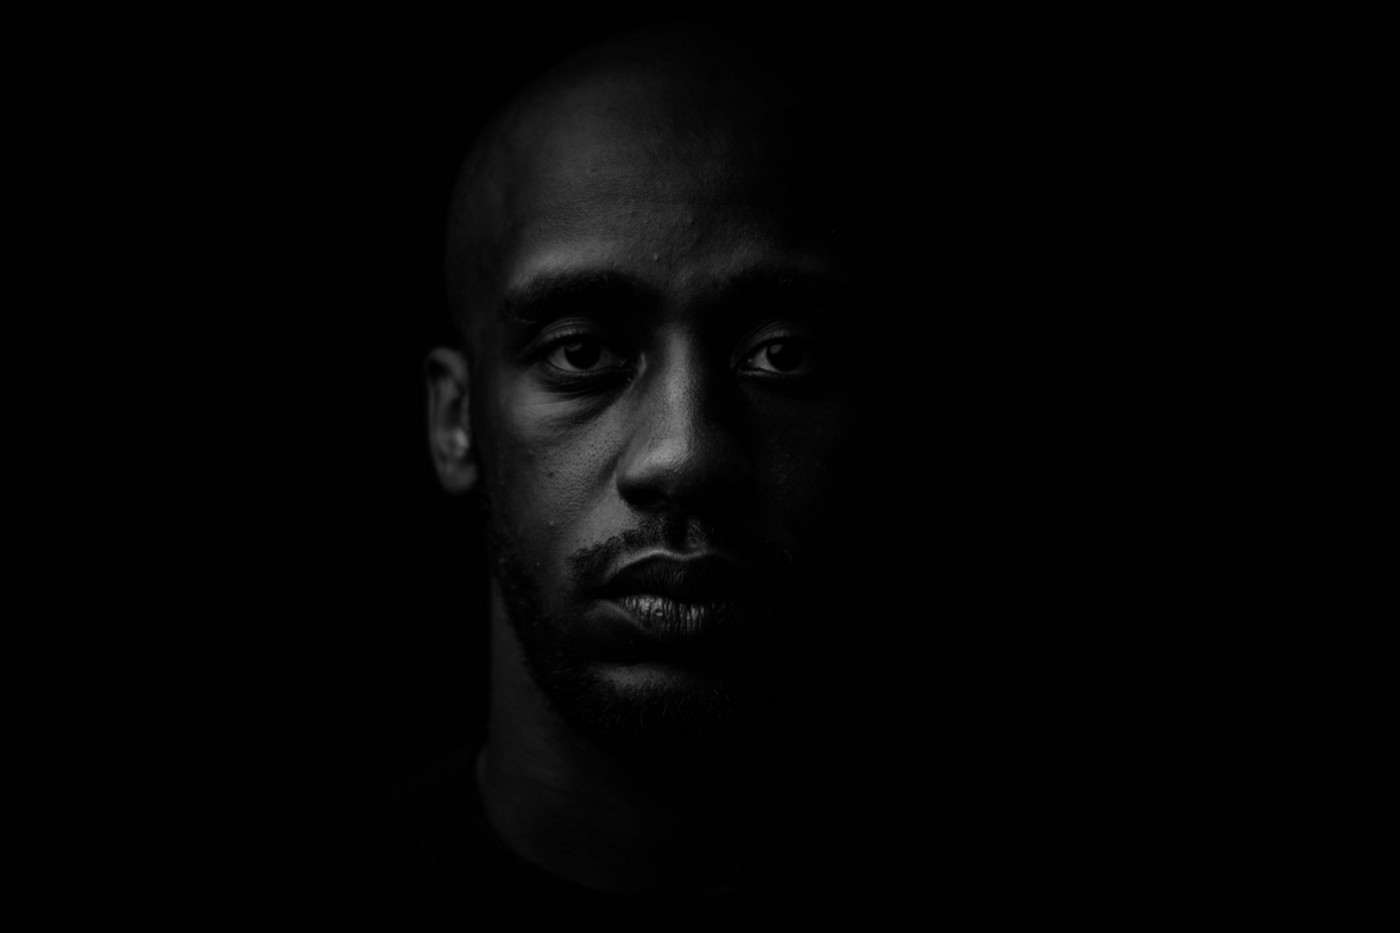 Close-up portrait of a young Black man against a black background.